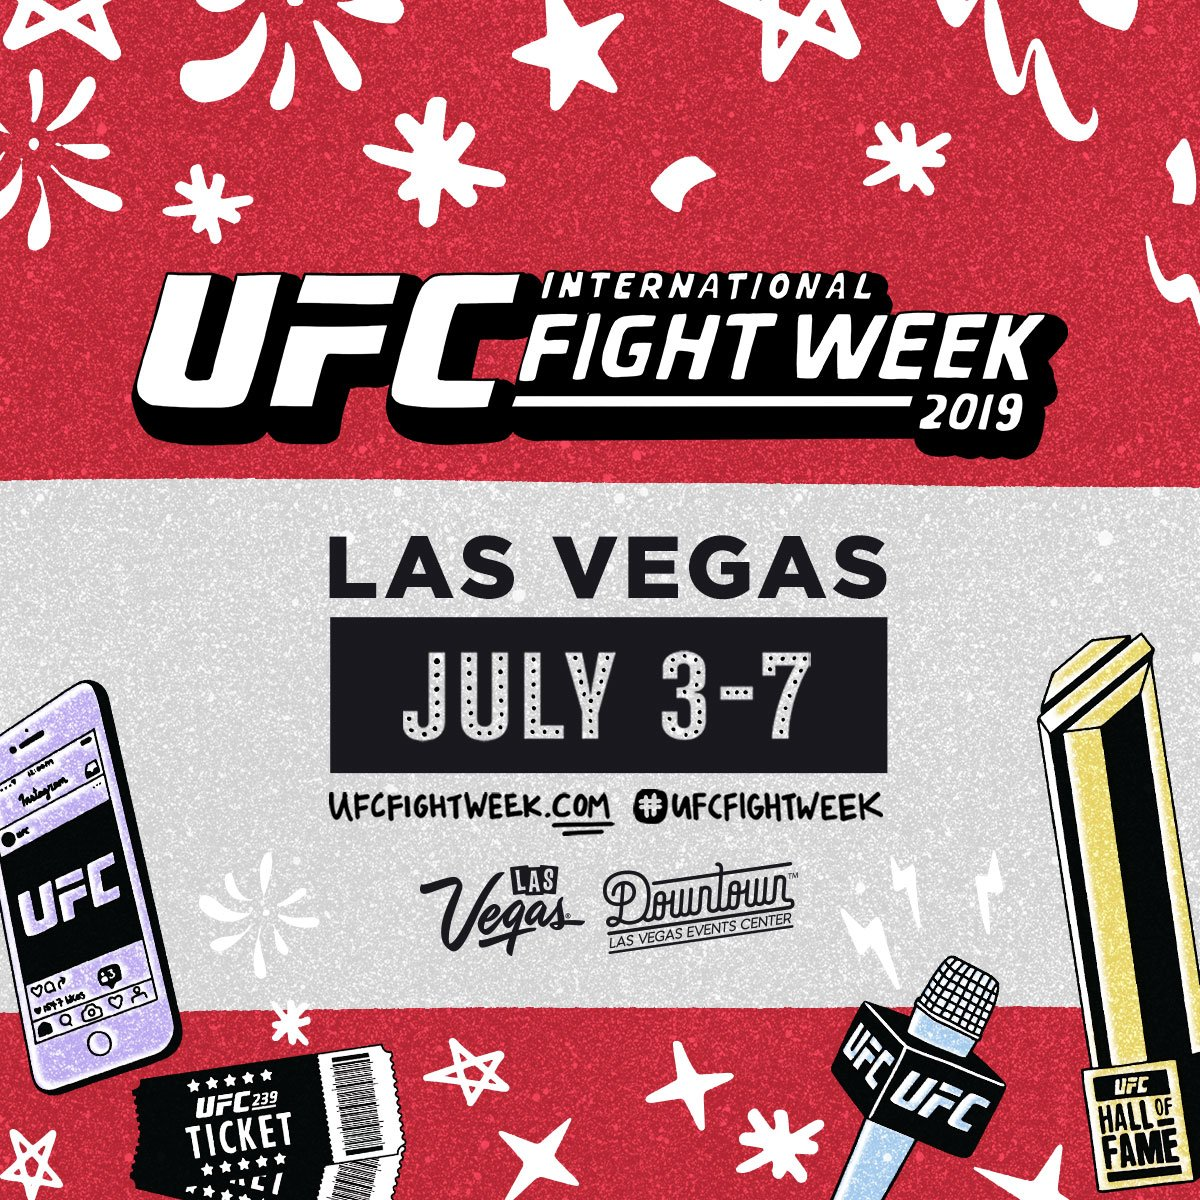 The biggest week of the year is coming up!  Sign up for #UFCFightWeek ➡️ http://www.ufcfightweek.com  pic.twitter.com/9IMbTCgbMC #ufc #mma